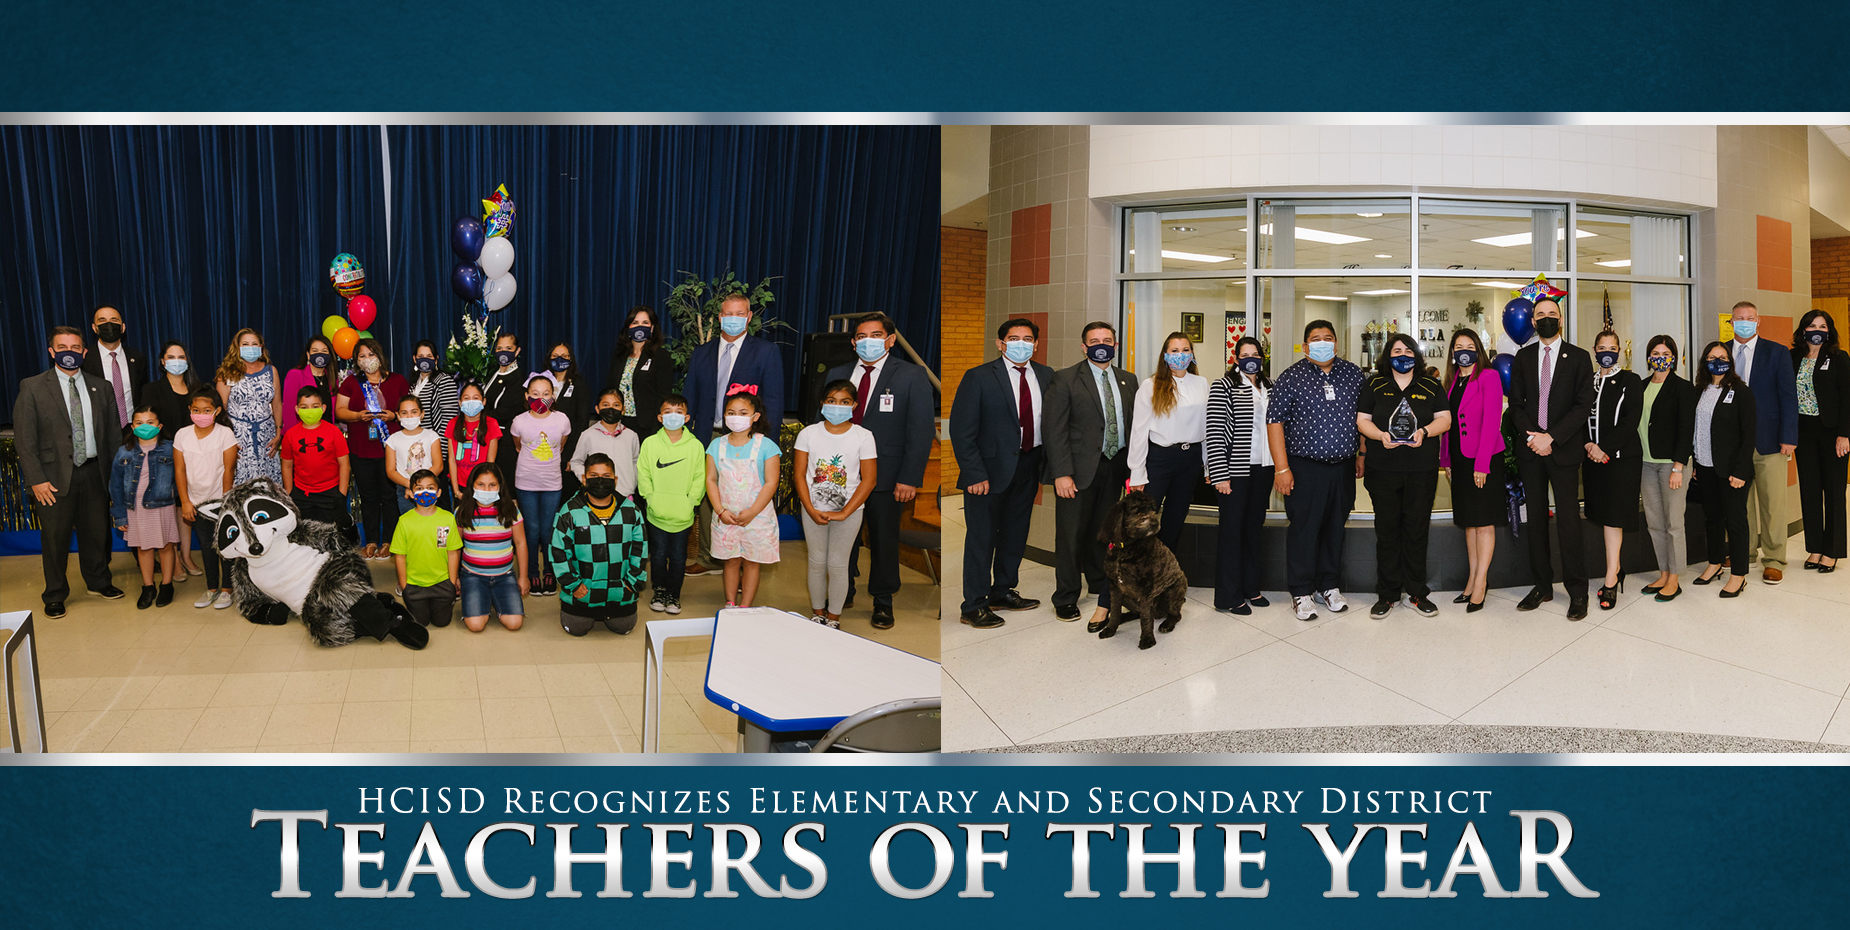 HCISD recognizes elementary and secondary district teachers of the year